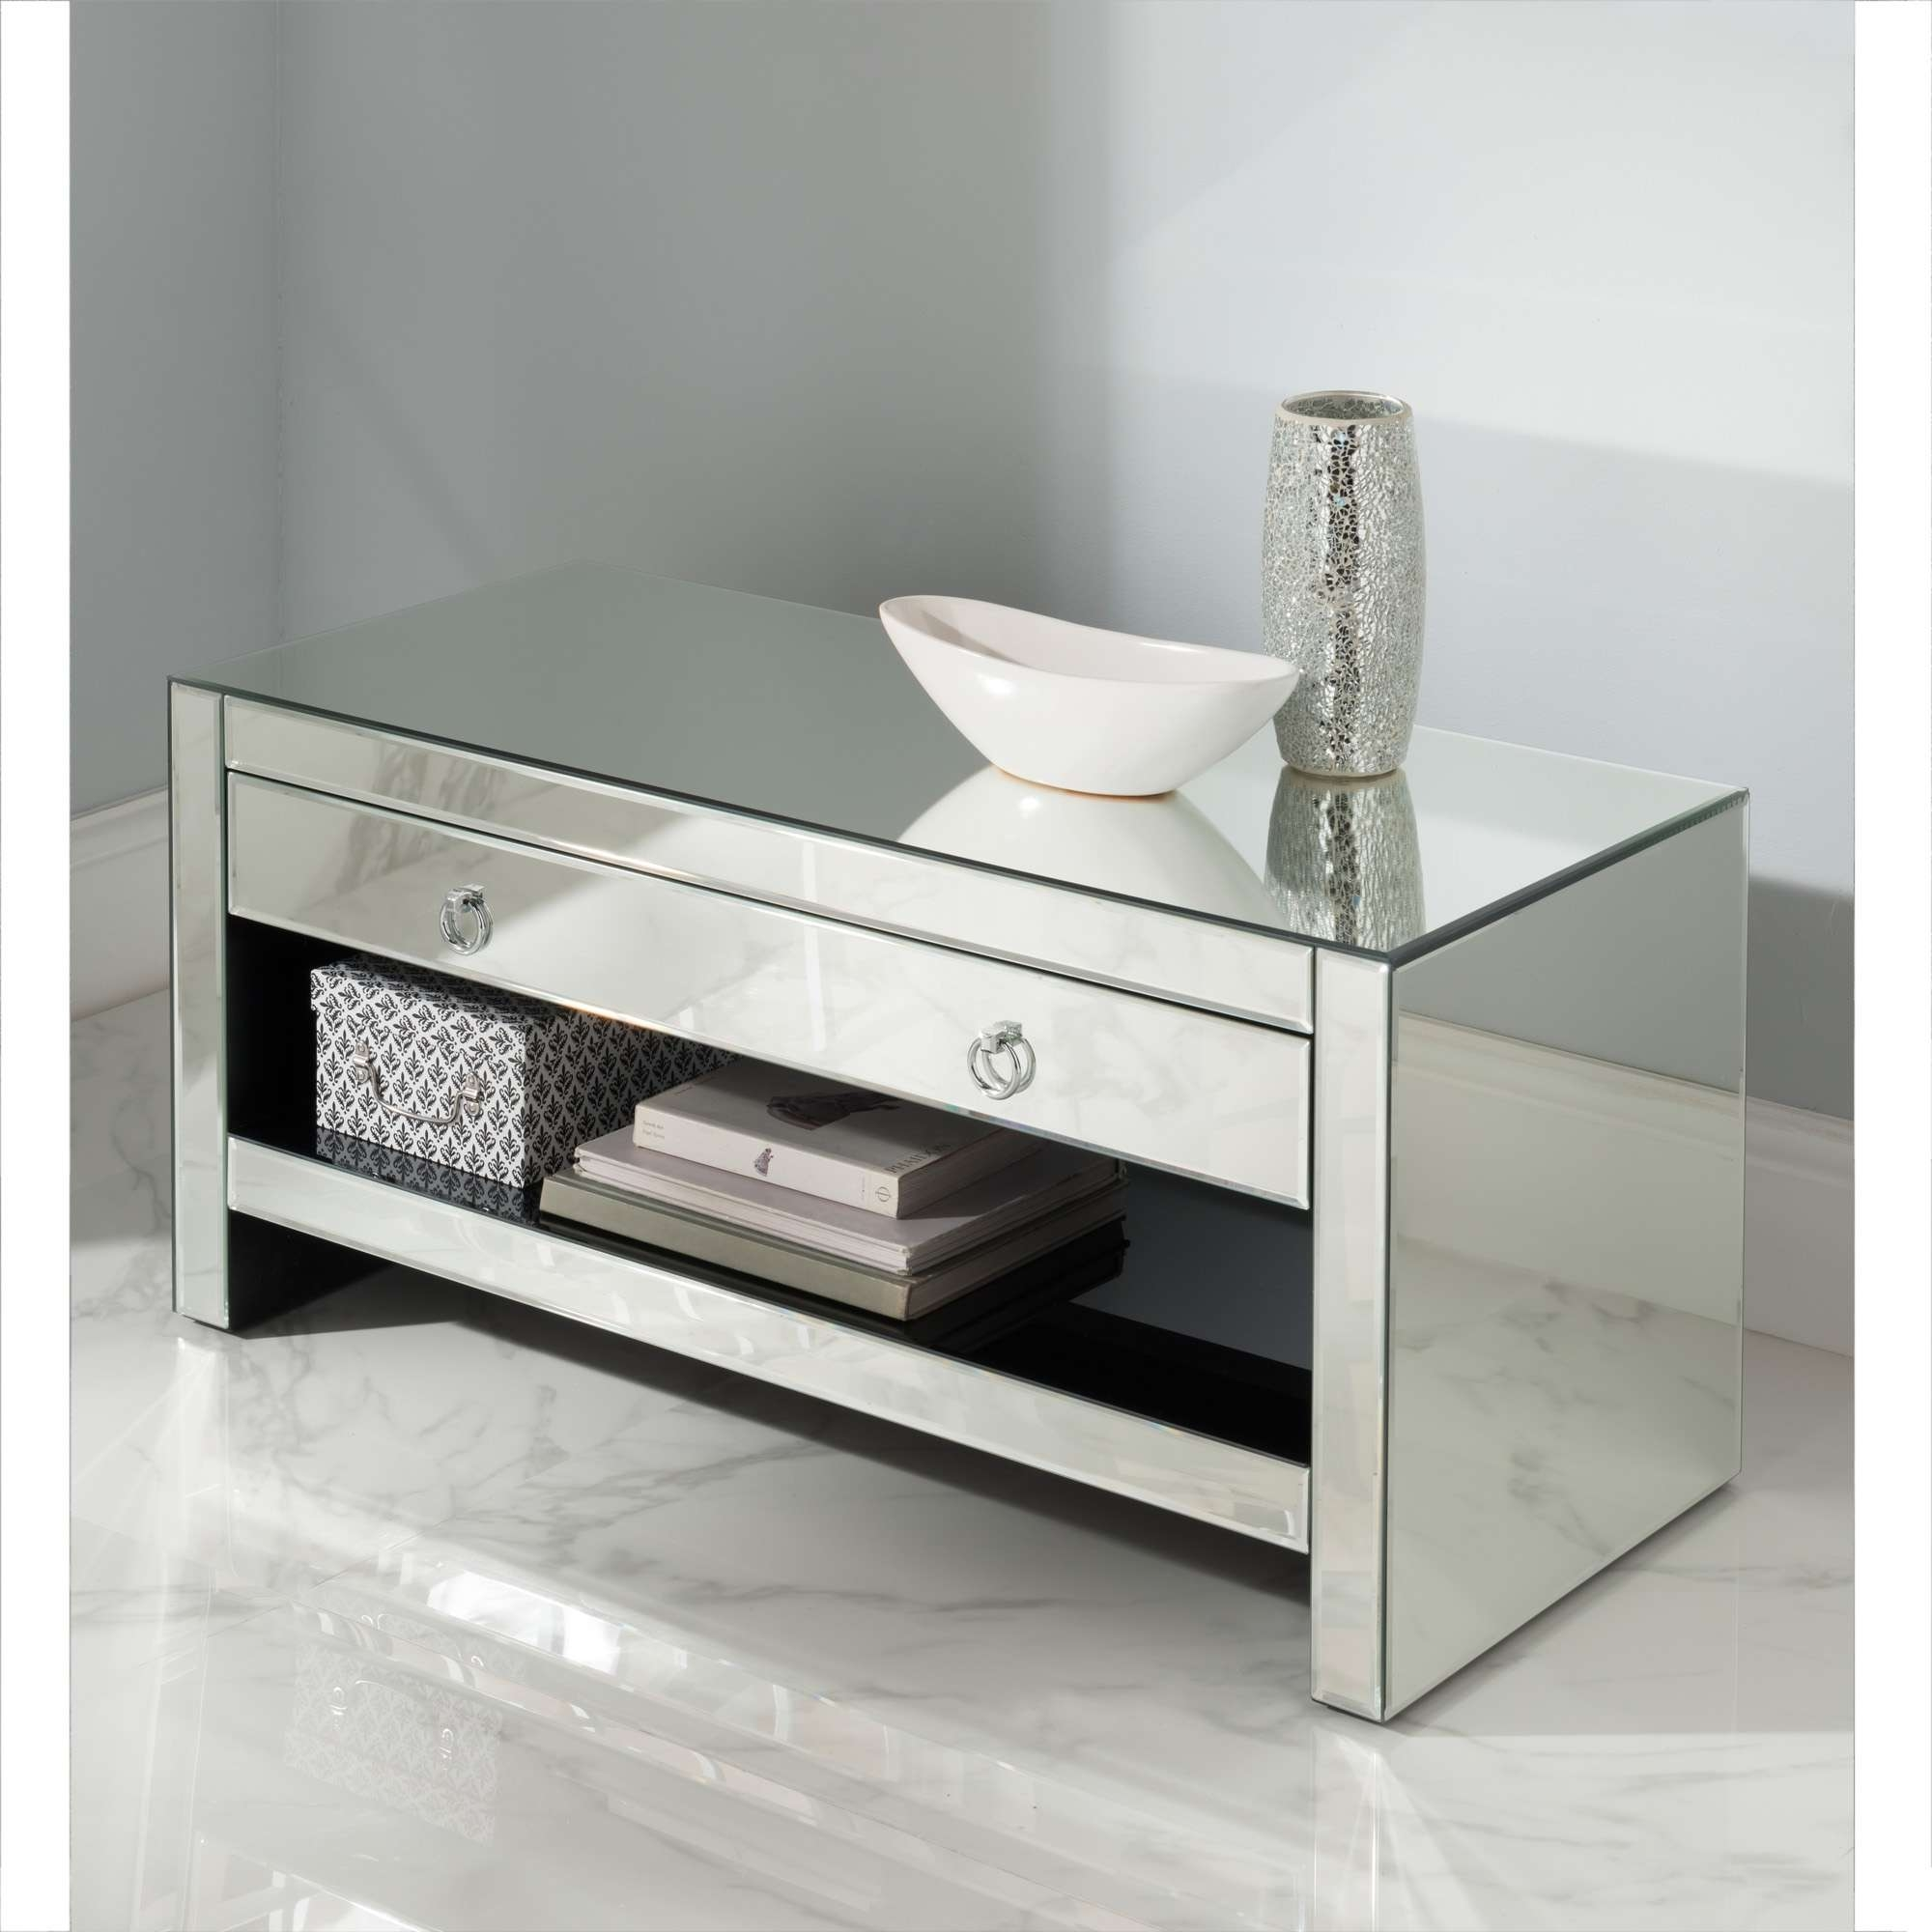 Best 15 Of Mirrored Tv Stands